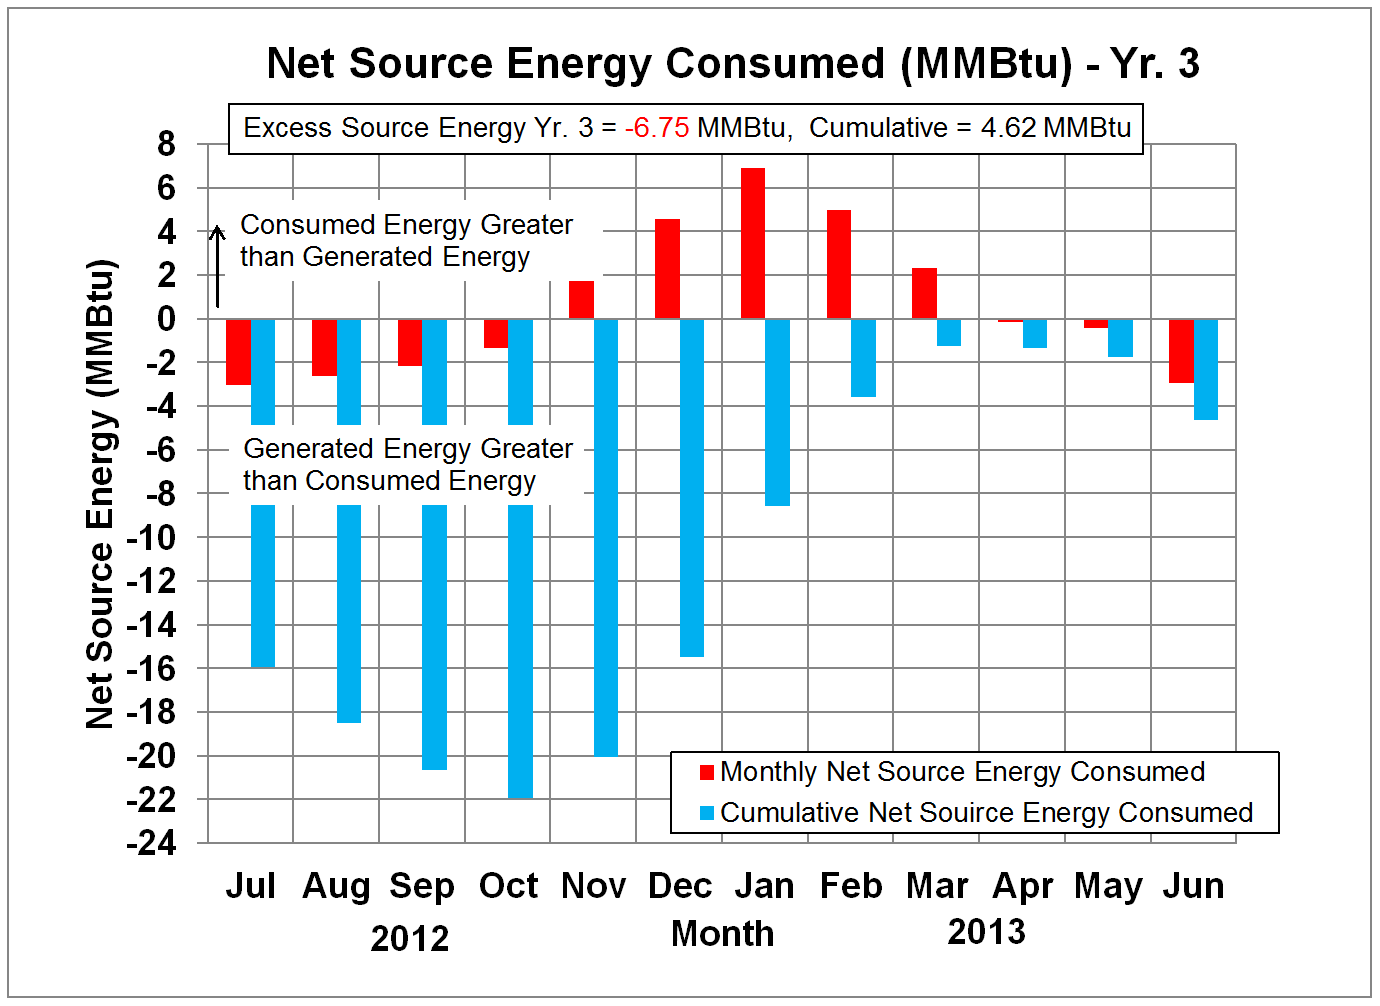 Net Source Energy in Million Btu's - Yr. 3